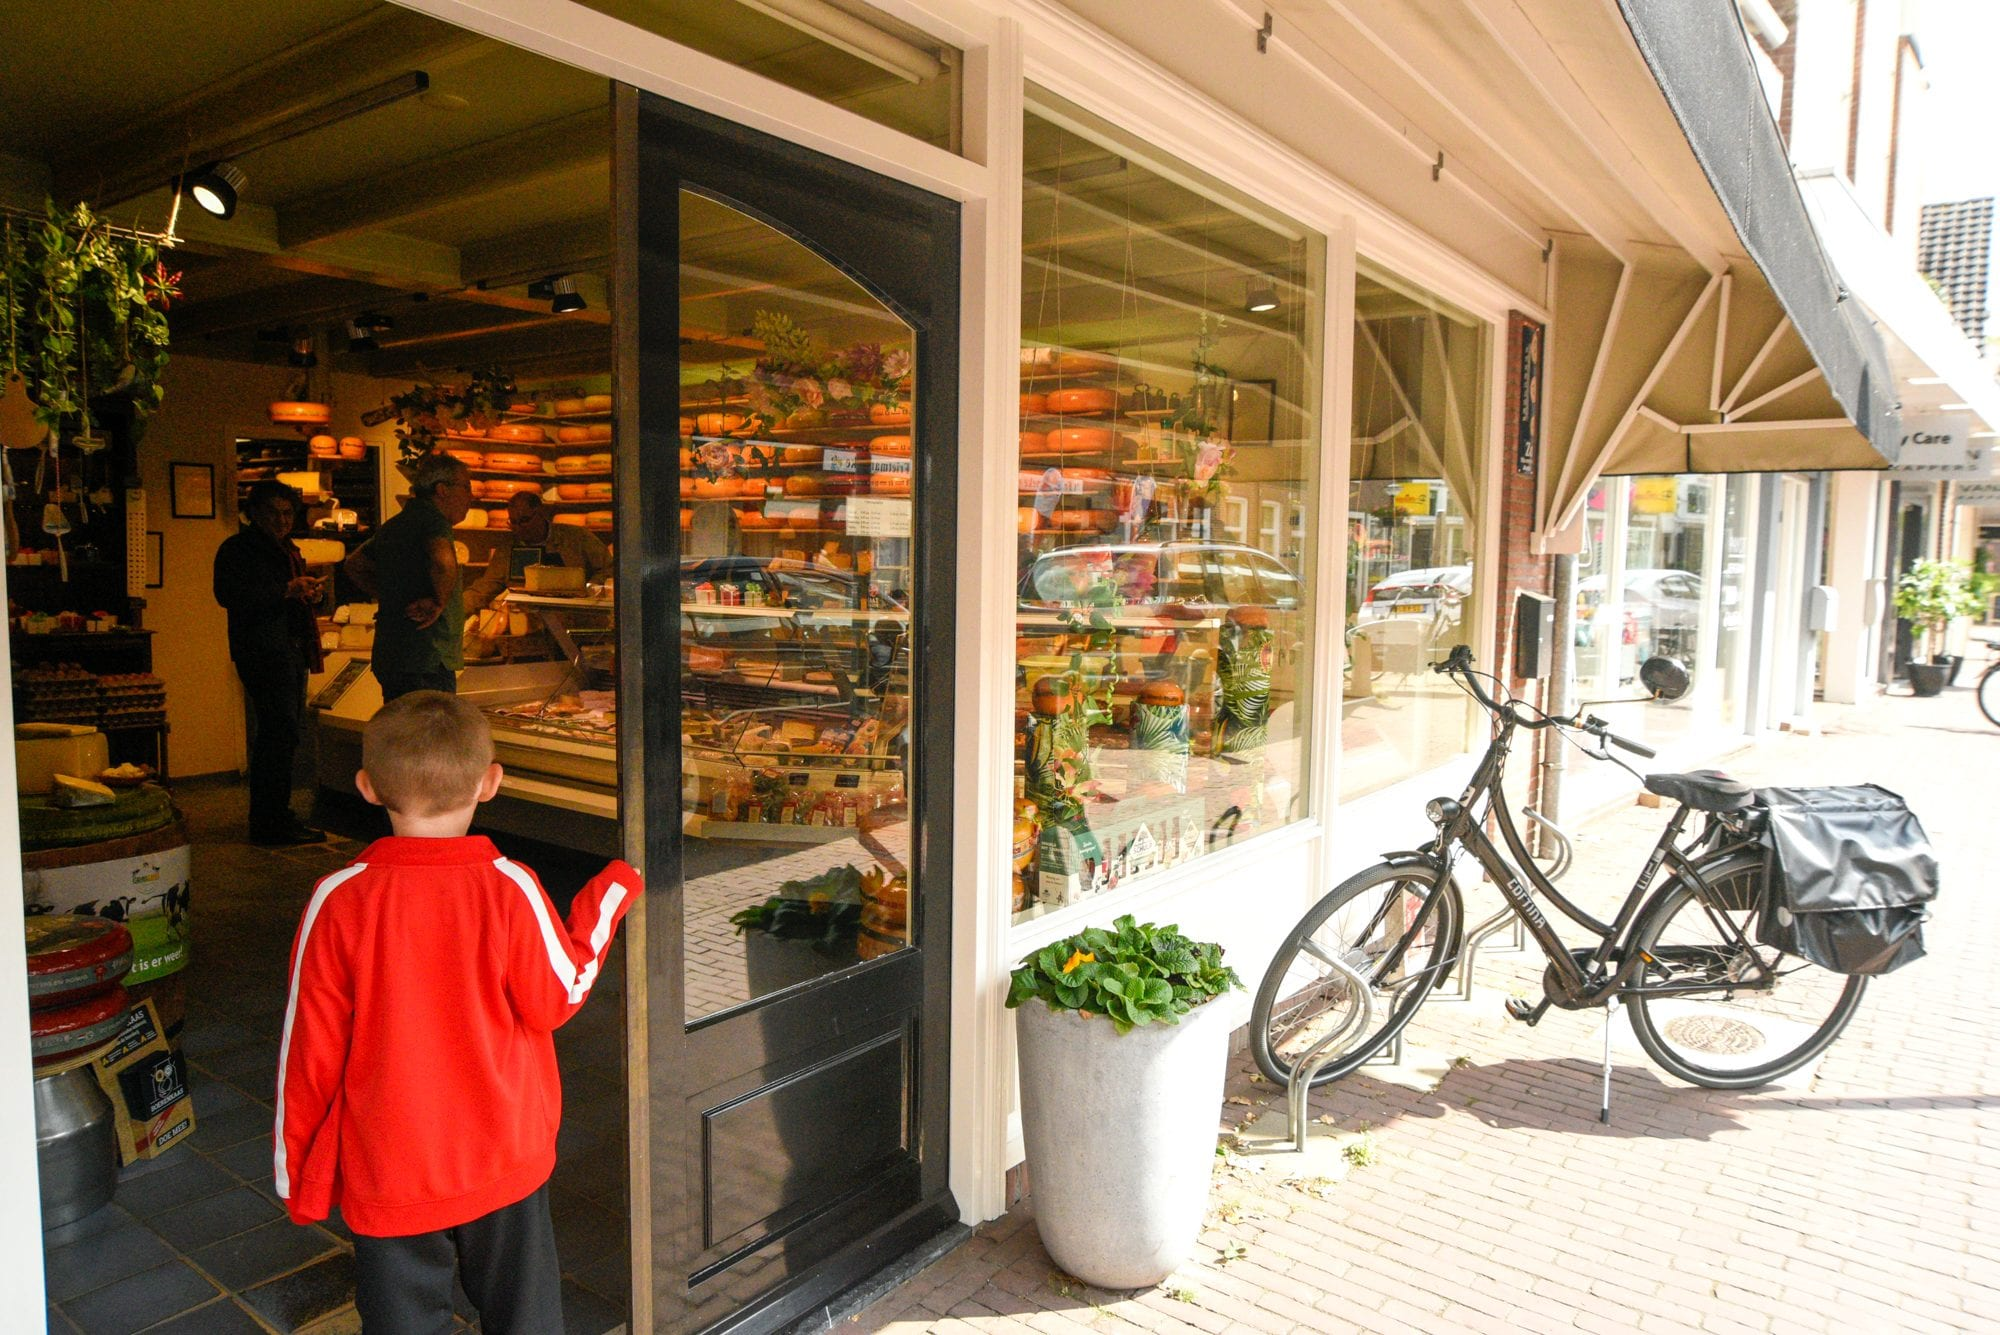 cheese shop with a small boy in red jacket at door. a bicycle is parked outside